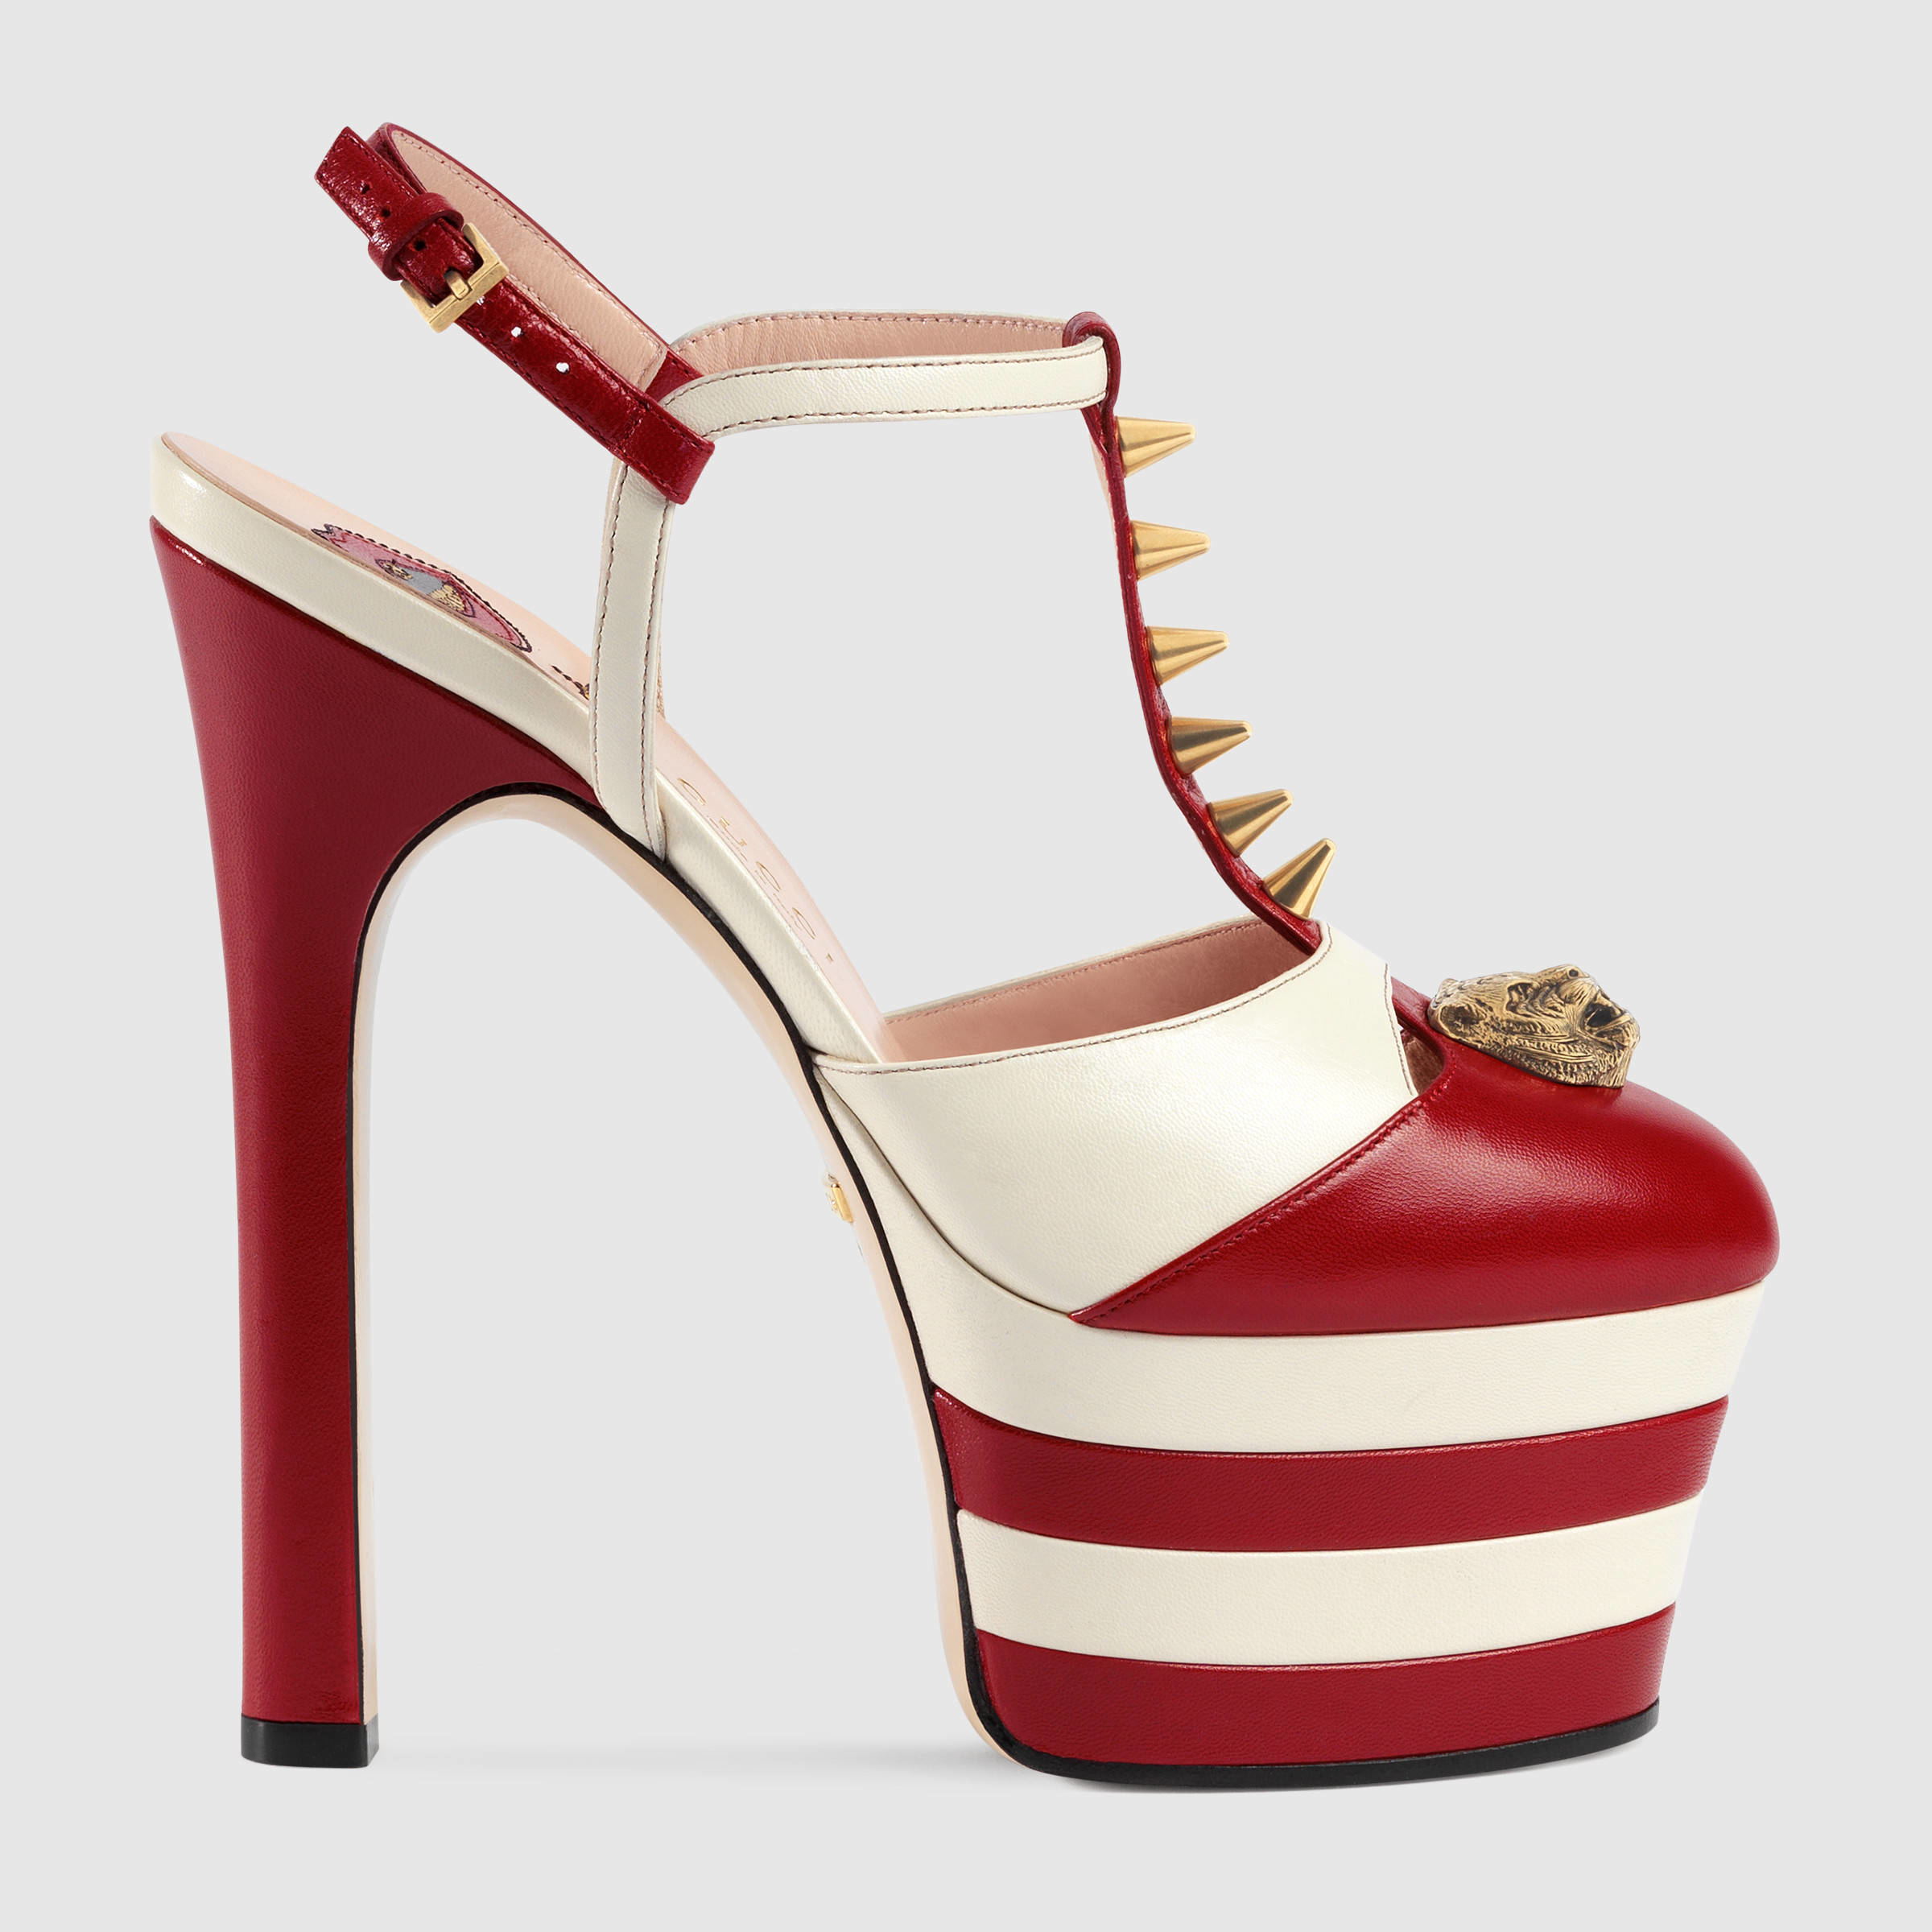 bfe8a37078 Gucci Studded Leather Platform Pump in Red - Lyst